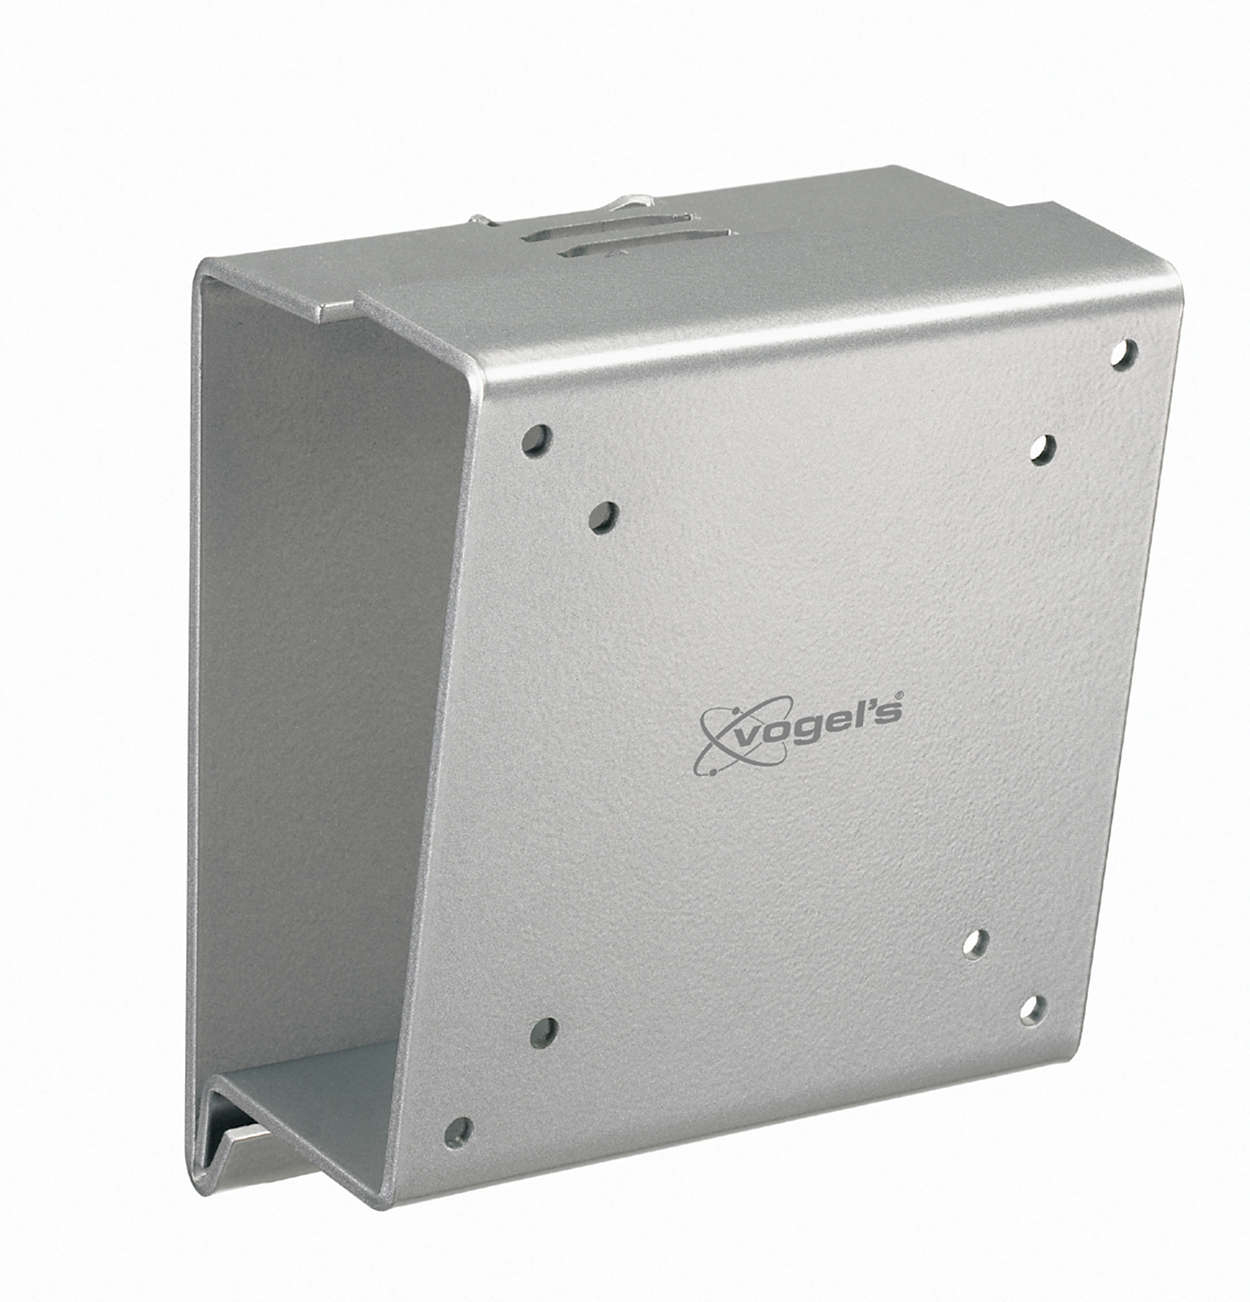 Universal wall mount with tilt function